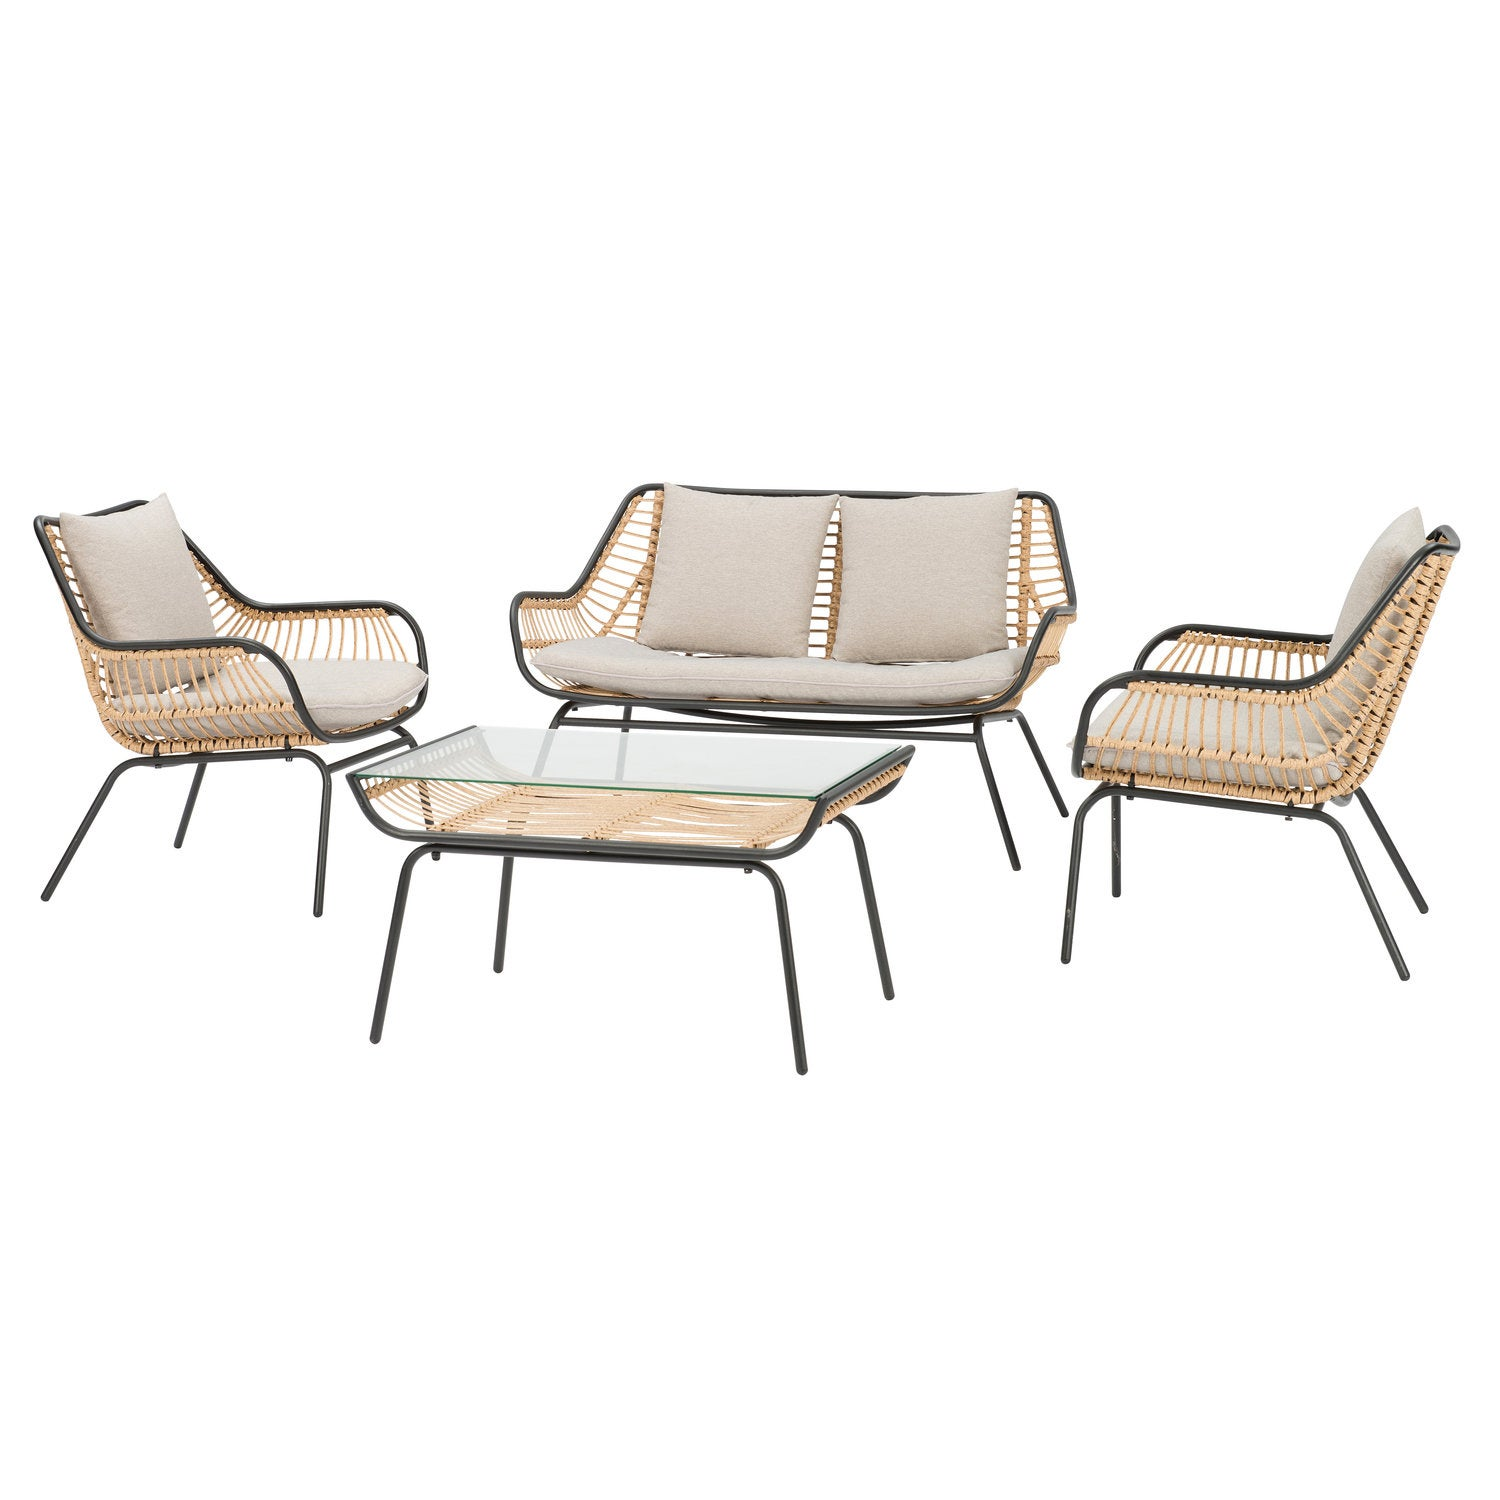 Intratuin 4-zits loungeset Zita wicker naturel